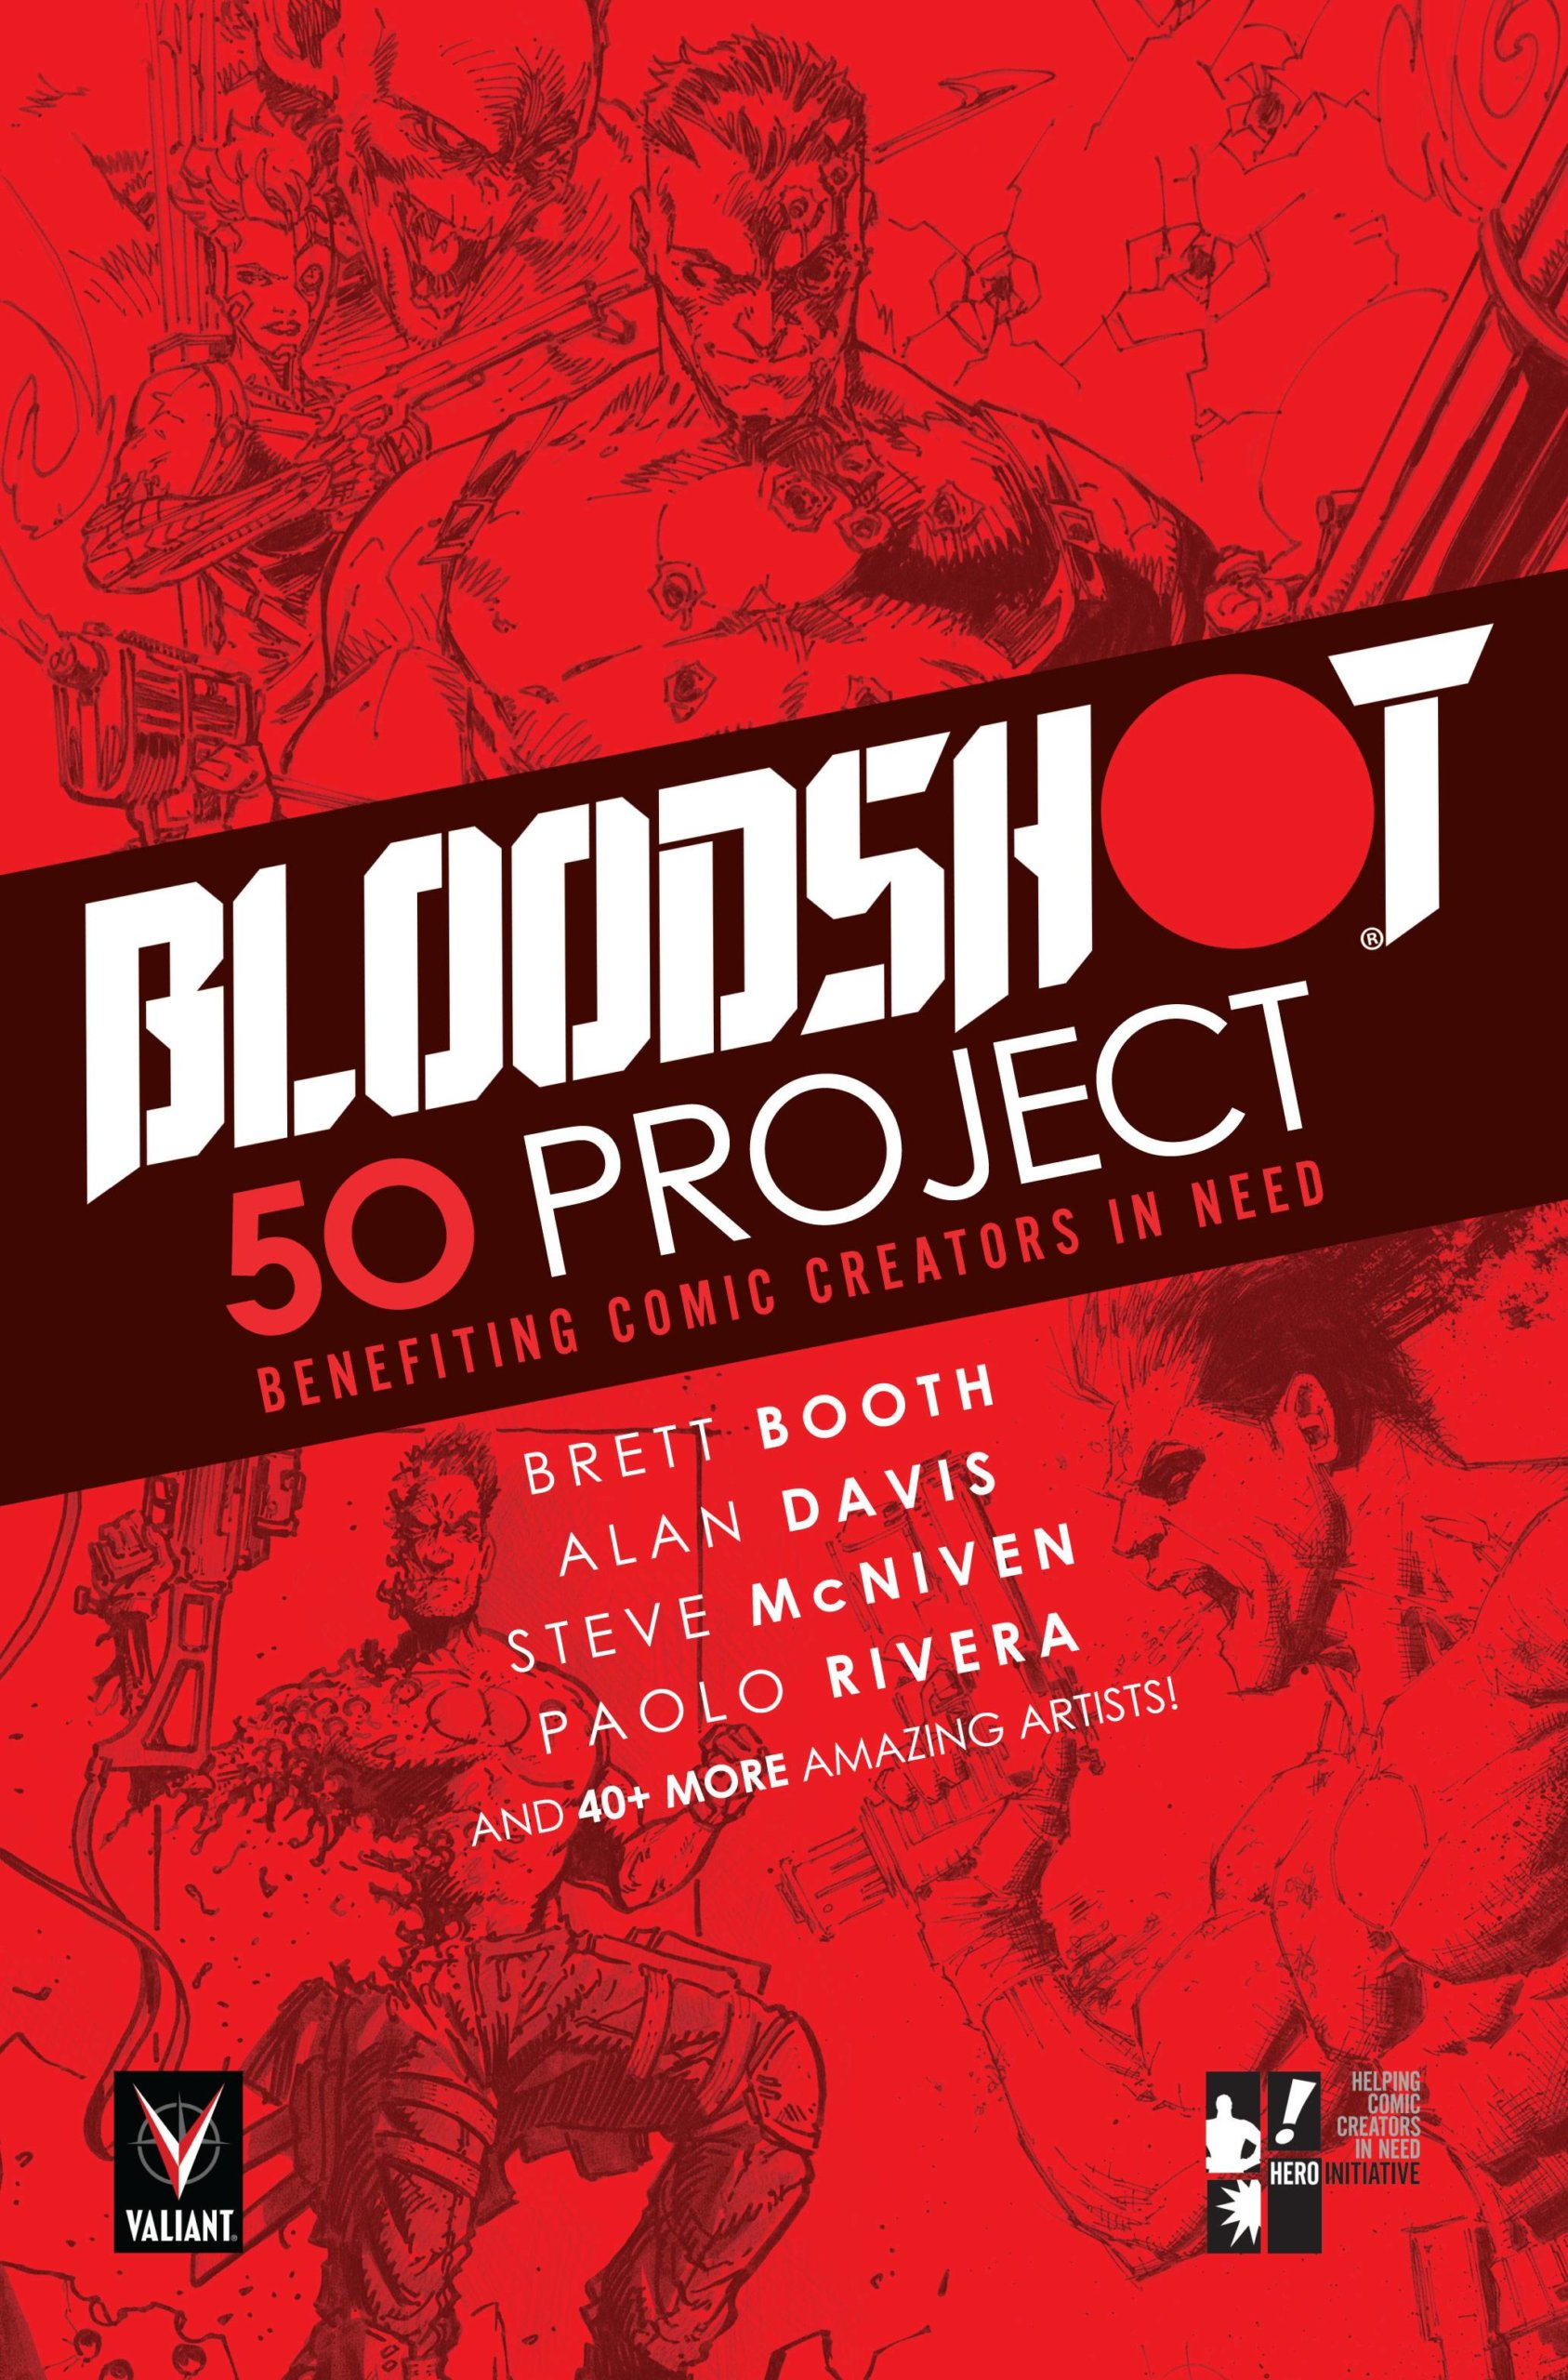 The Bloodshot 50 Project